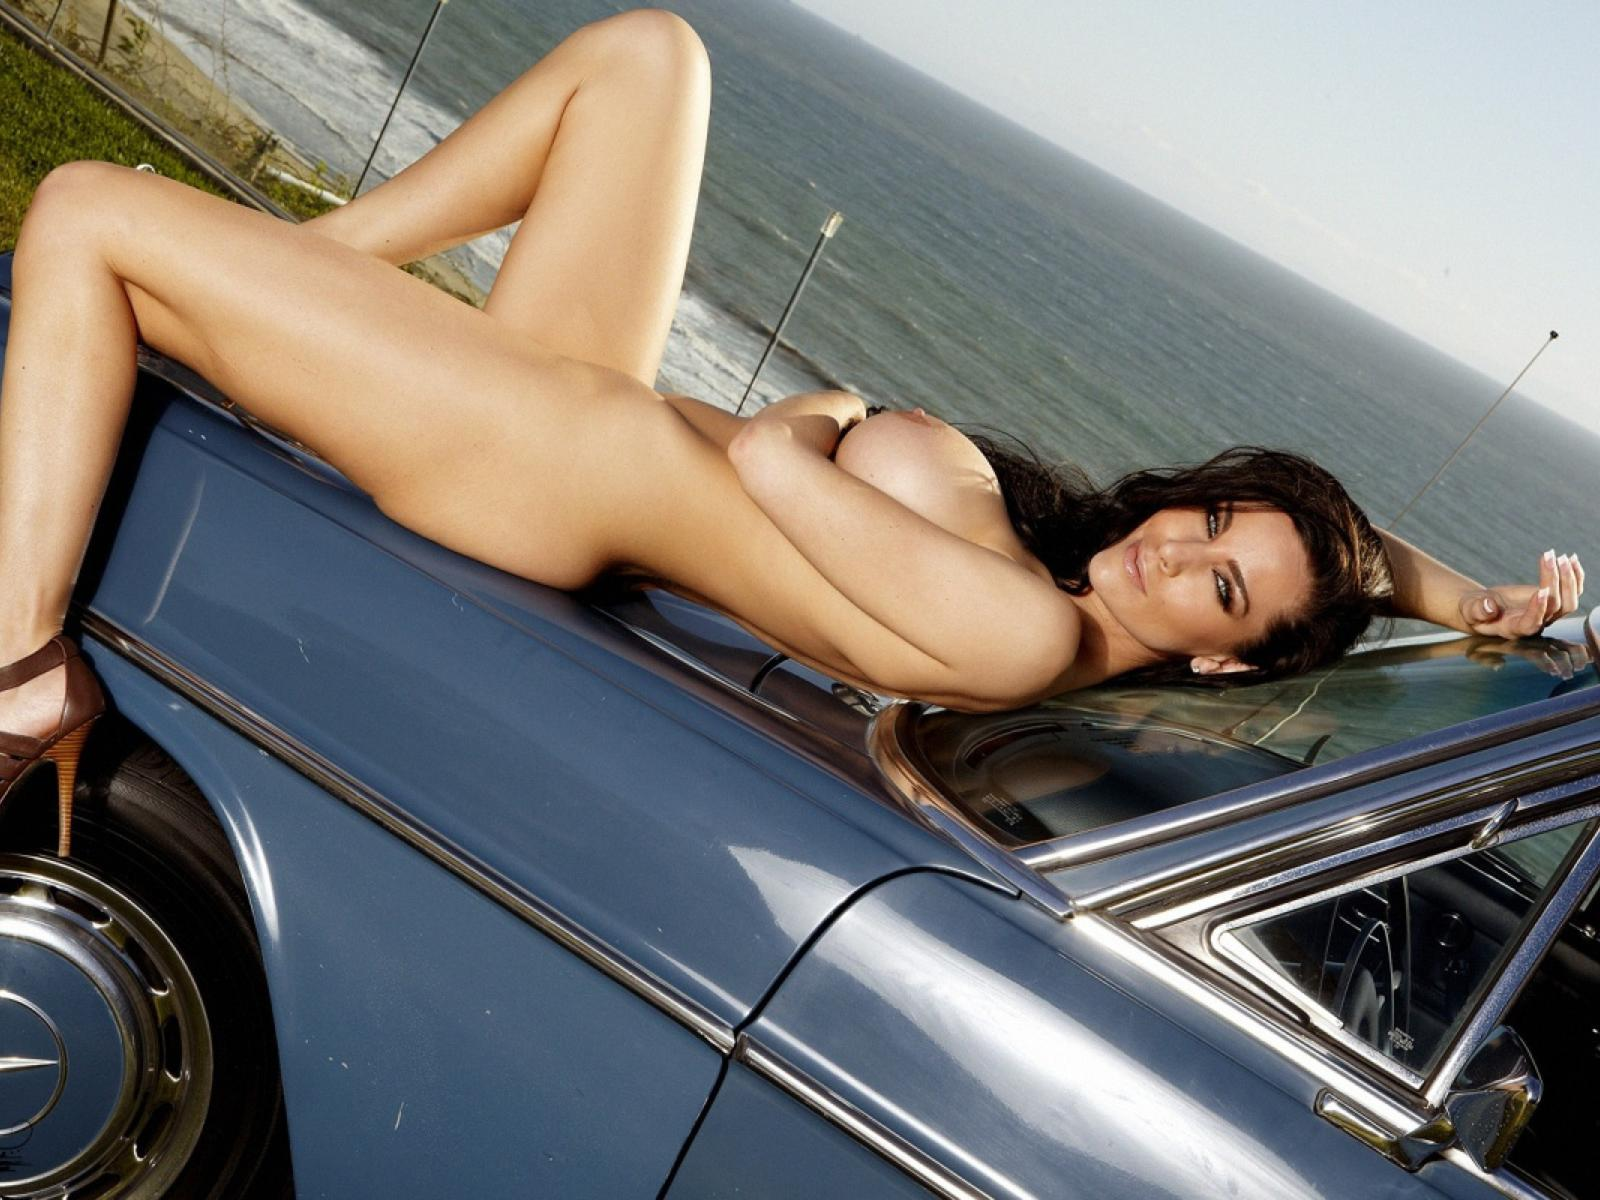 Women nude on cars